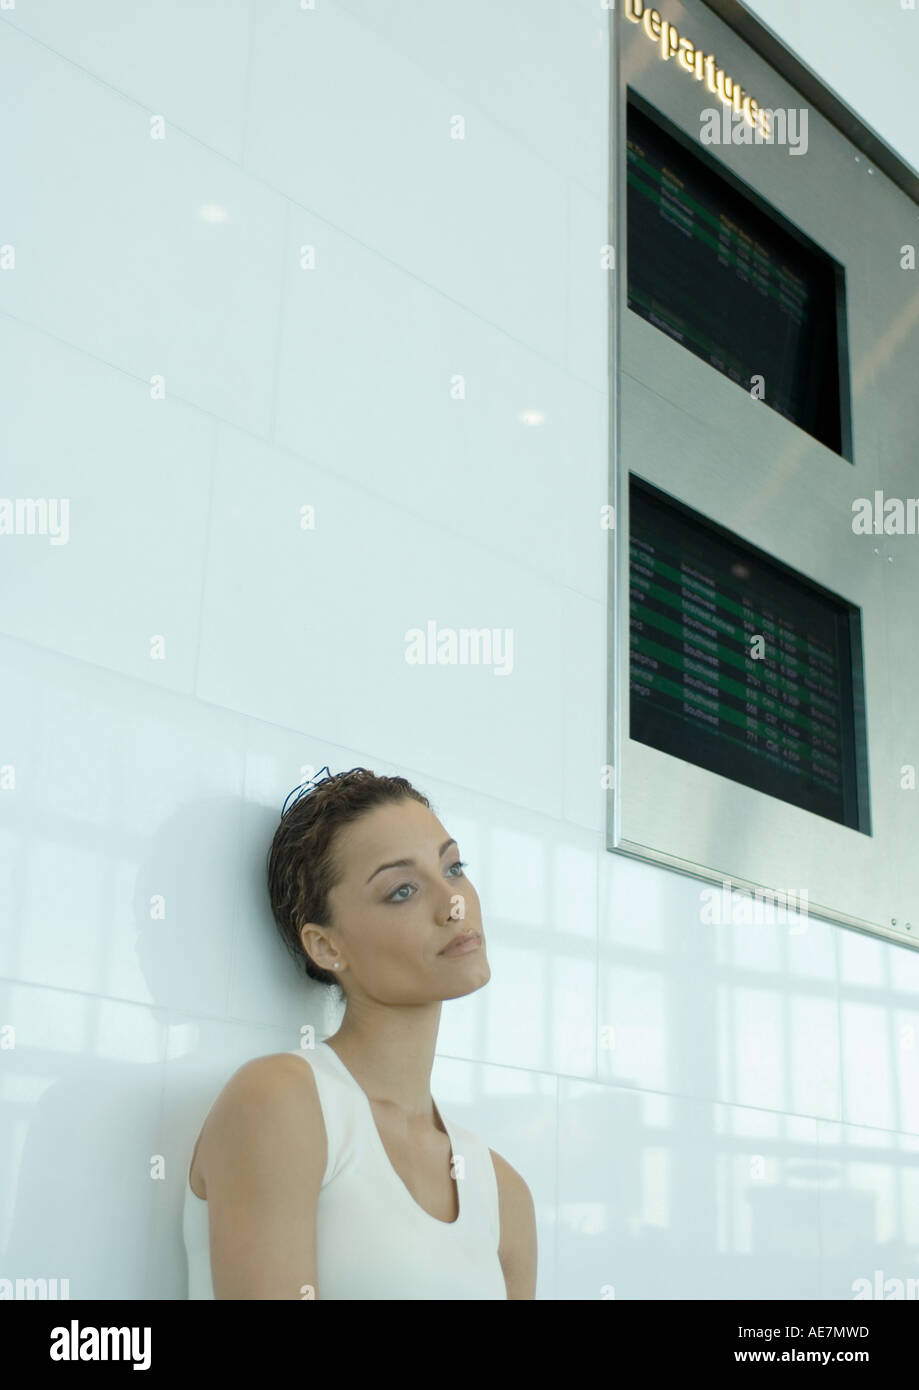 Woman leaning against wall below arrival and departure boards - Stock Image